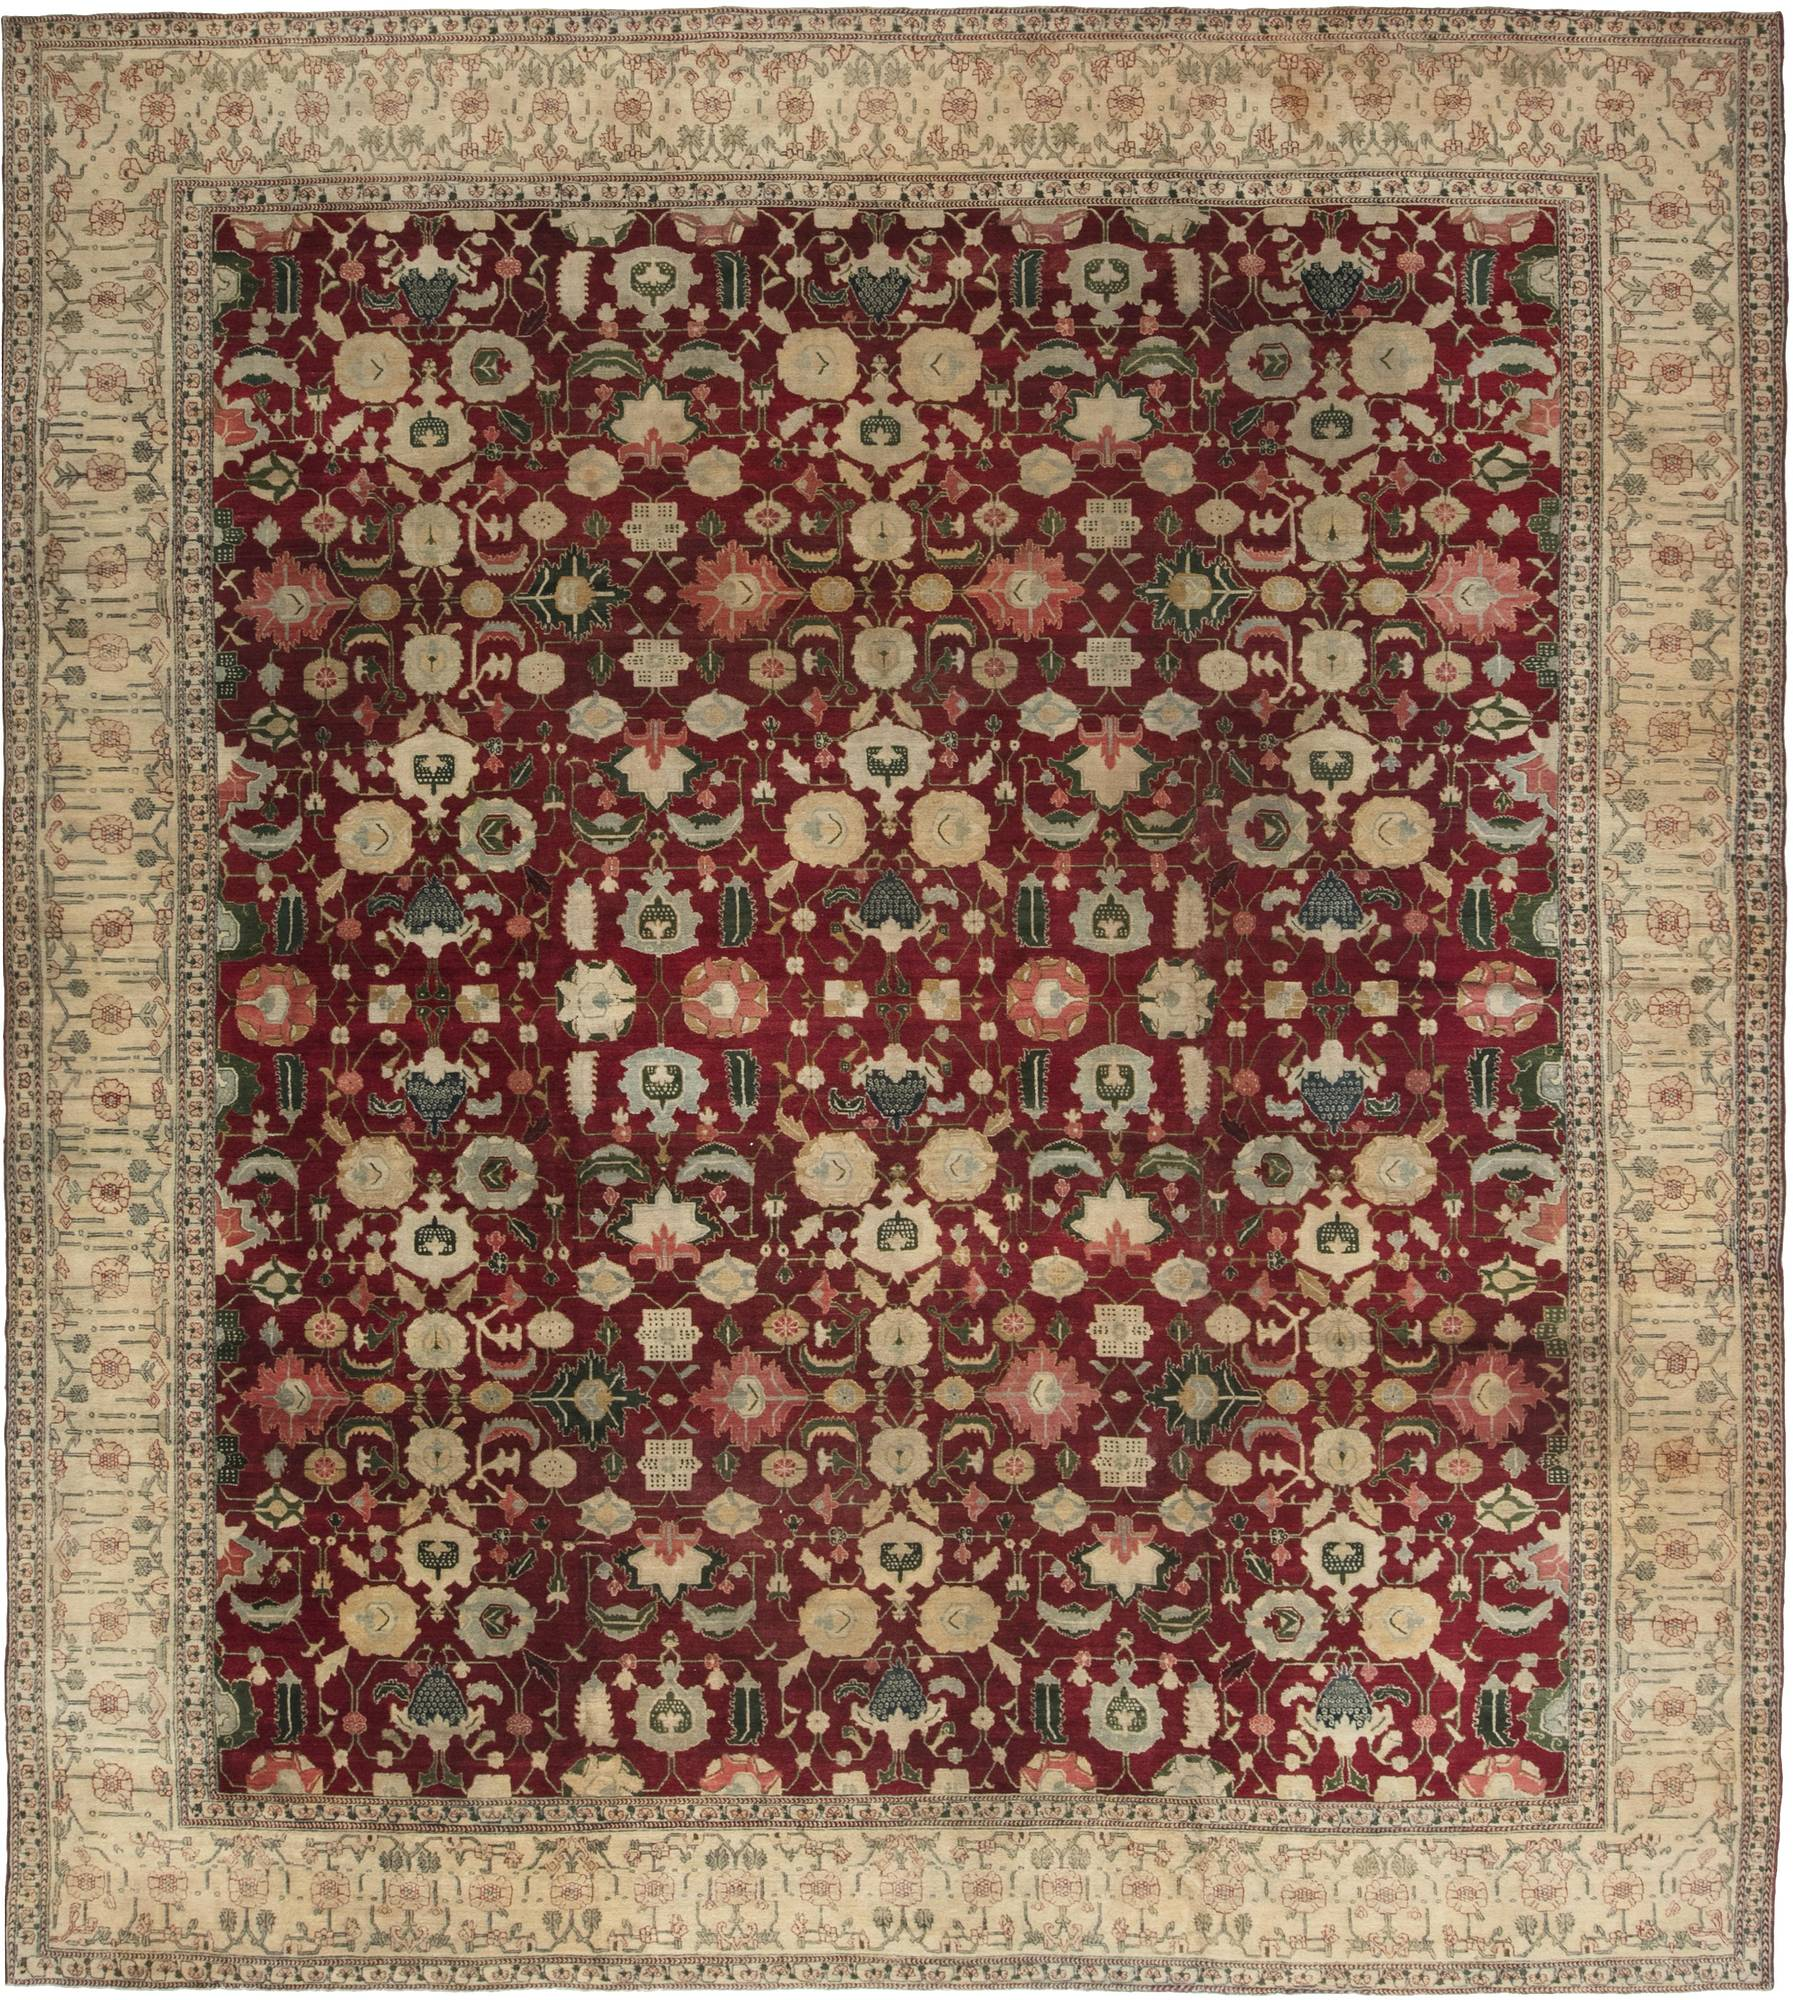 Arts And Crafts Rugs With Exciting Indian Agra Rug Design: Antique Indian Agra Rug BB4353 By Doris Leslie Blau